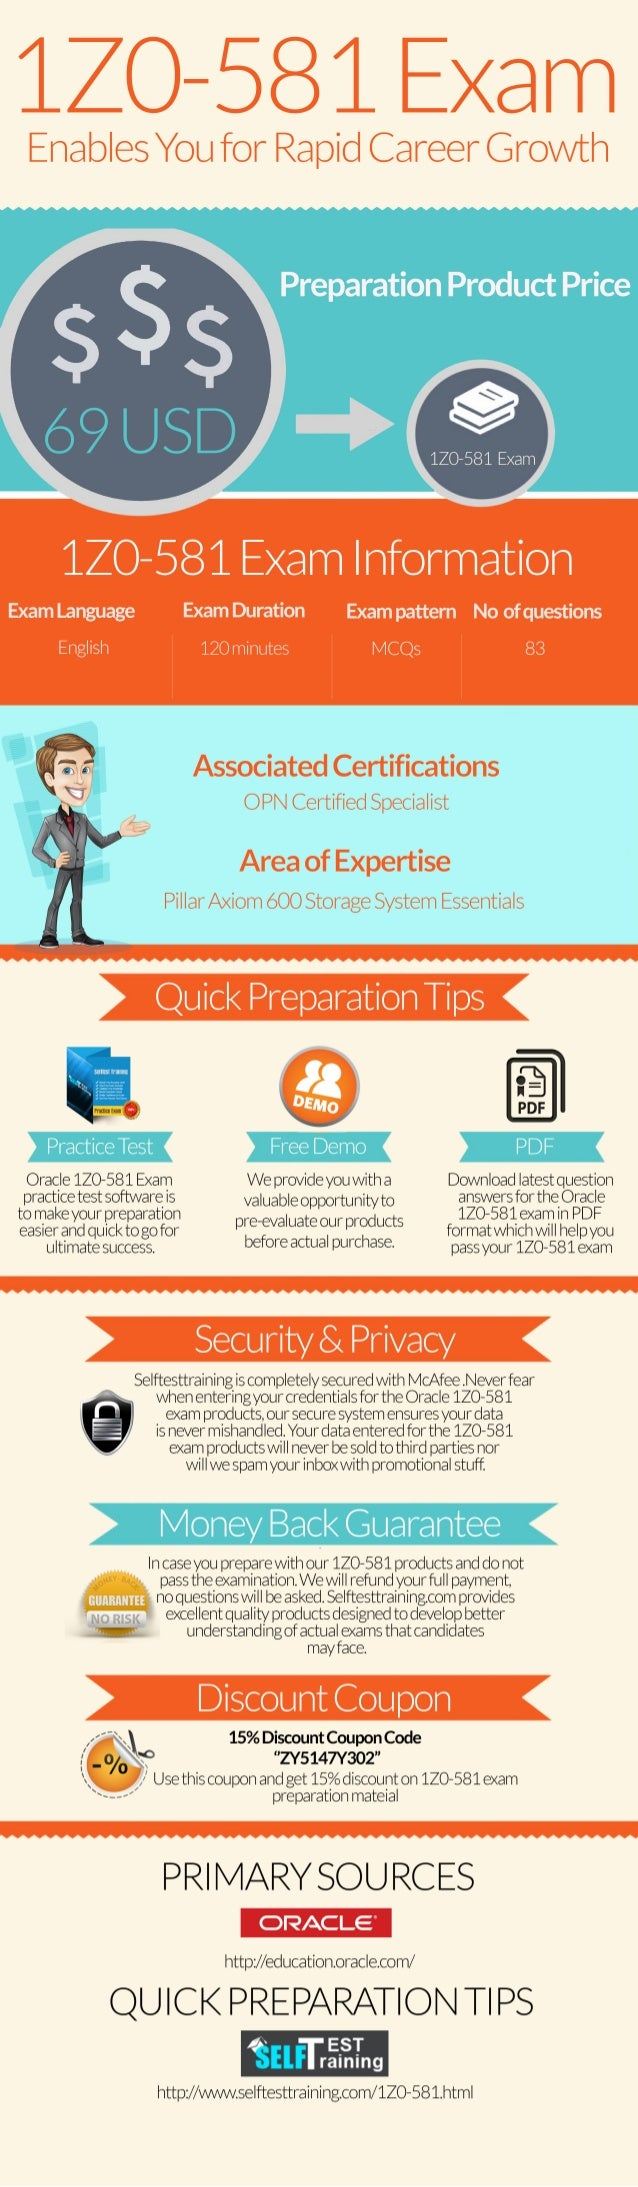 Latest 1Z0-581 Exam Questions & Practice Test [infographic]